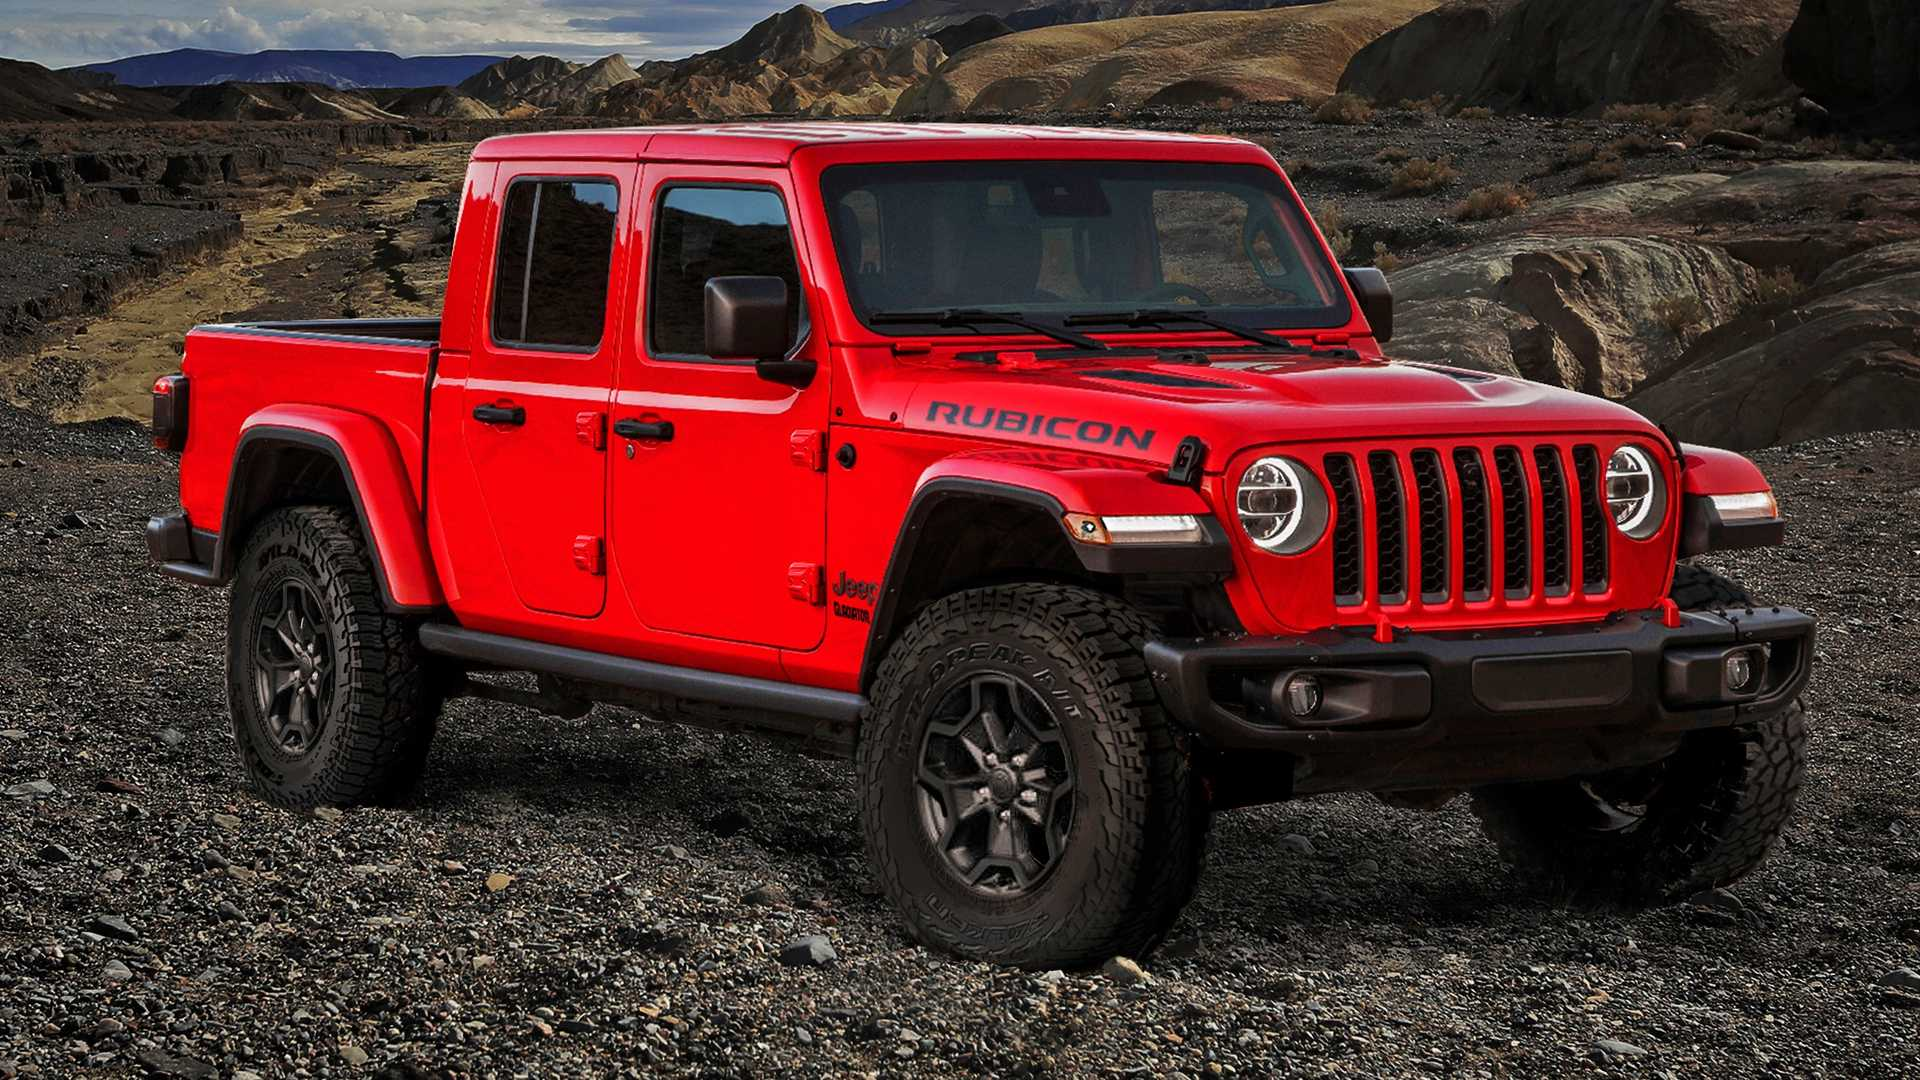 54 New Jeep Truck 2020 Price Redesign with Jeep Truck 2020 Price